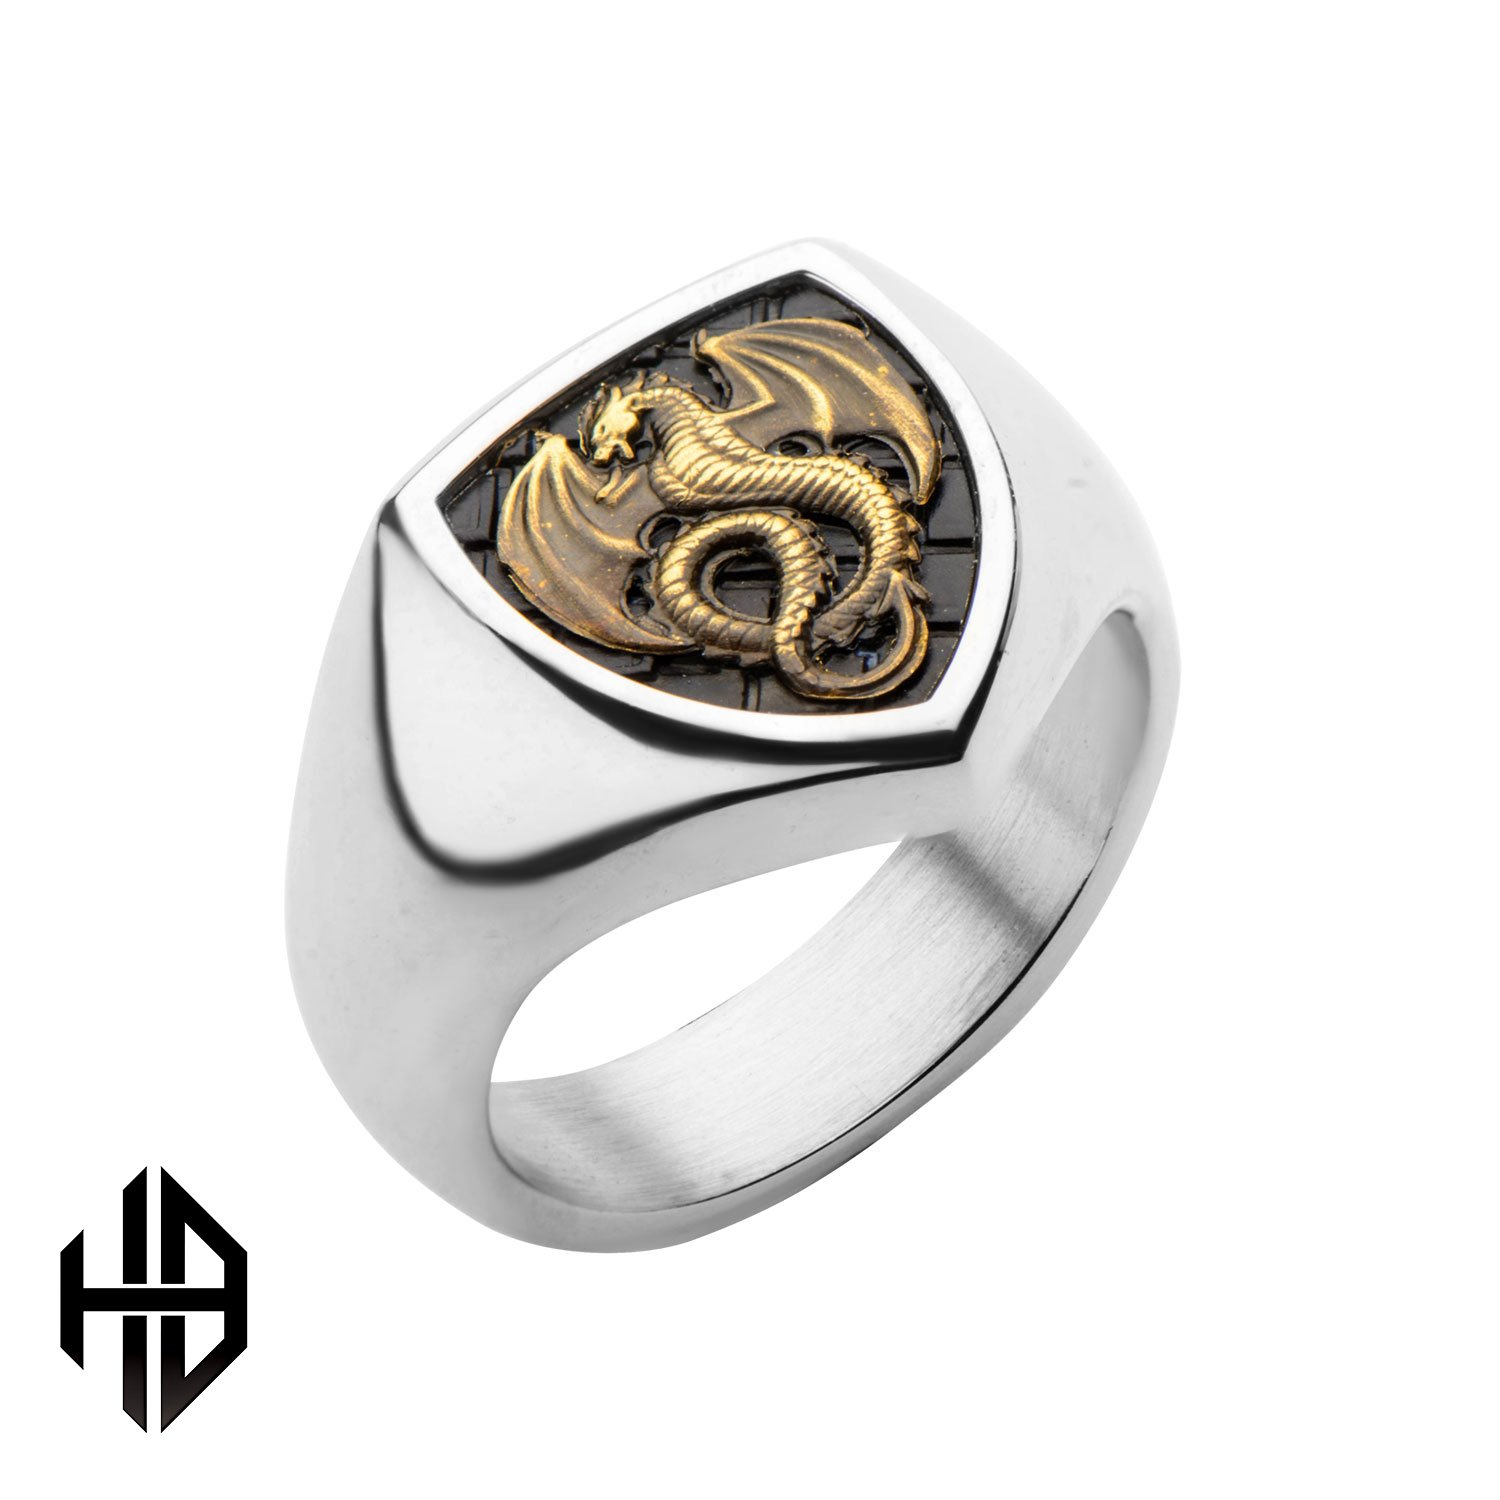 Hollis Bahringer Men's Antique Stamped Brass Dragon And Stainless Steel Polished Ring 12